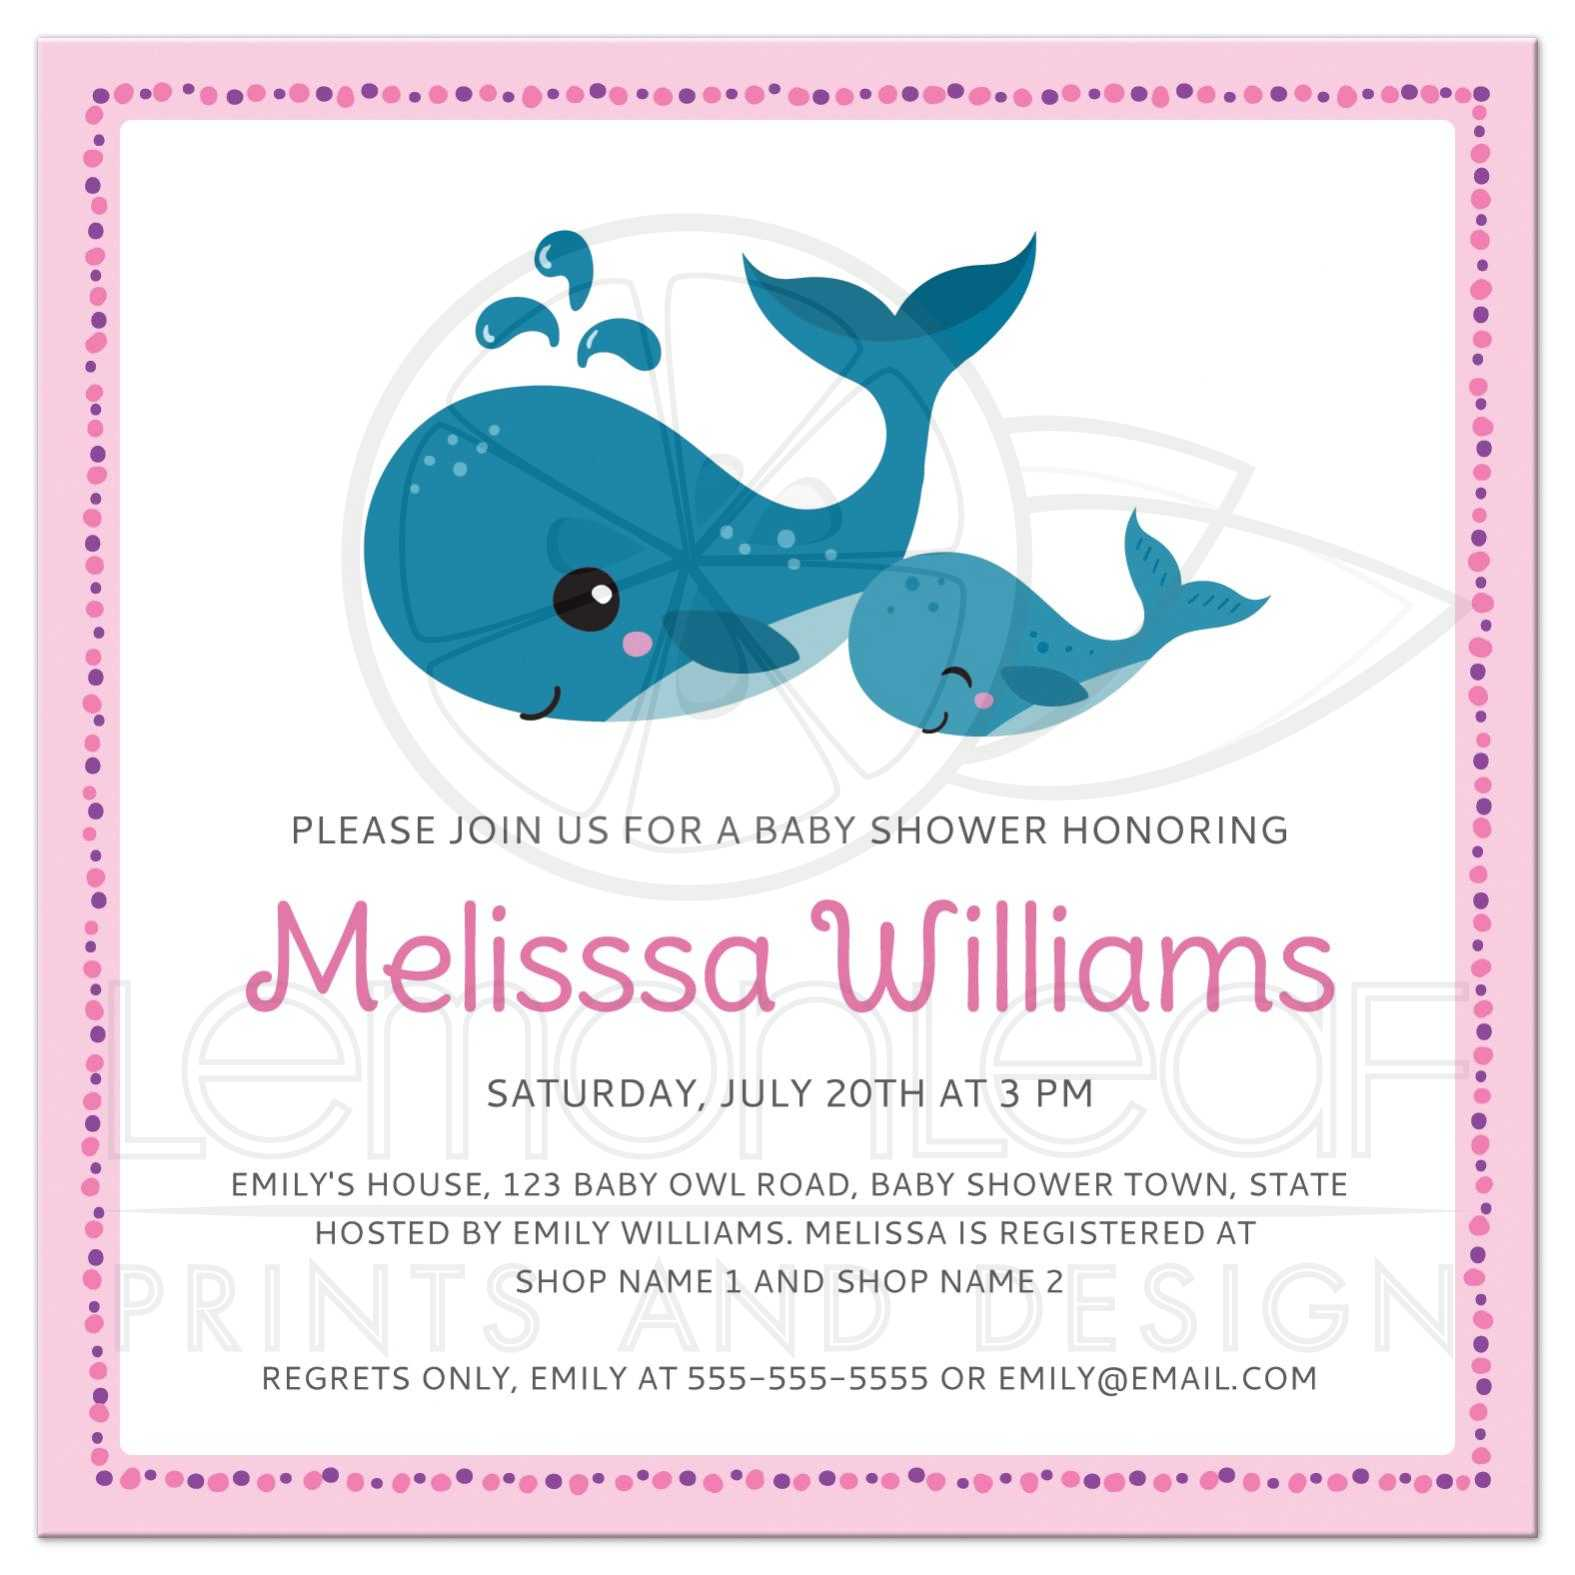 Mommy and baby whales cute pink baby shower invitation for girls